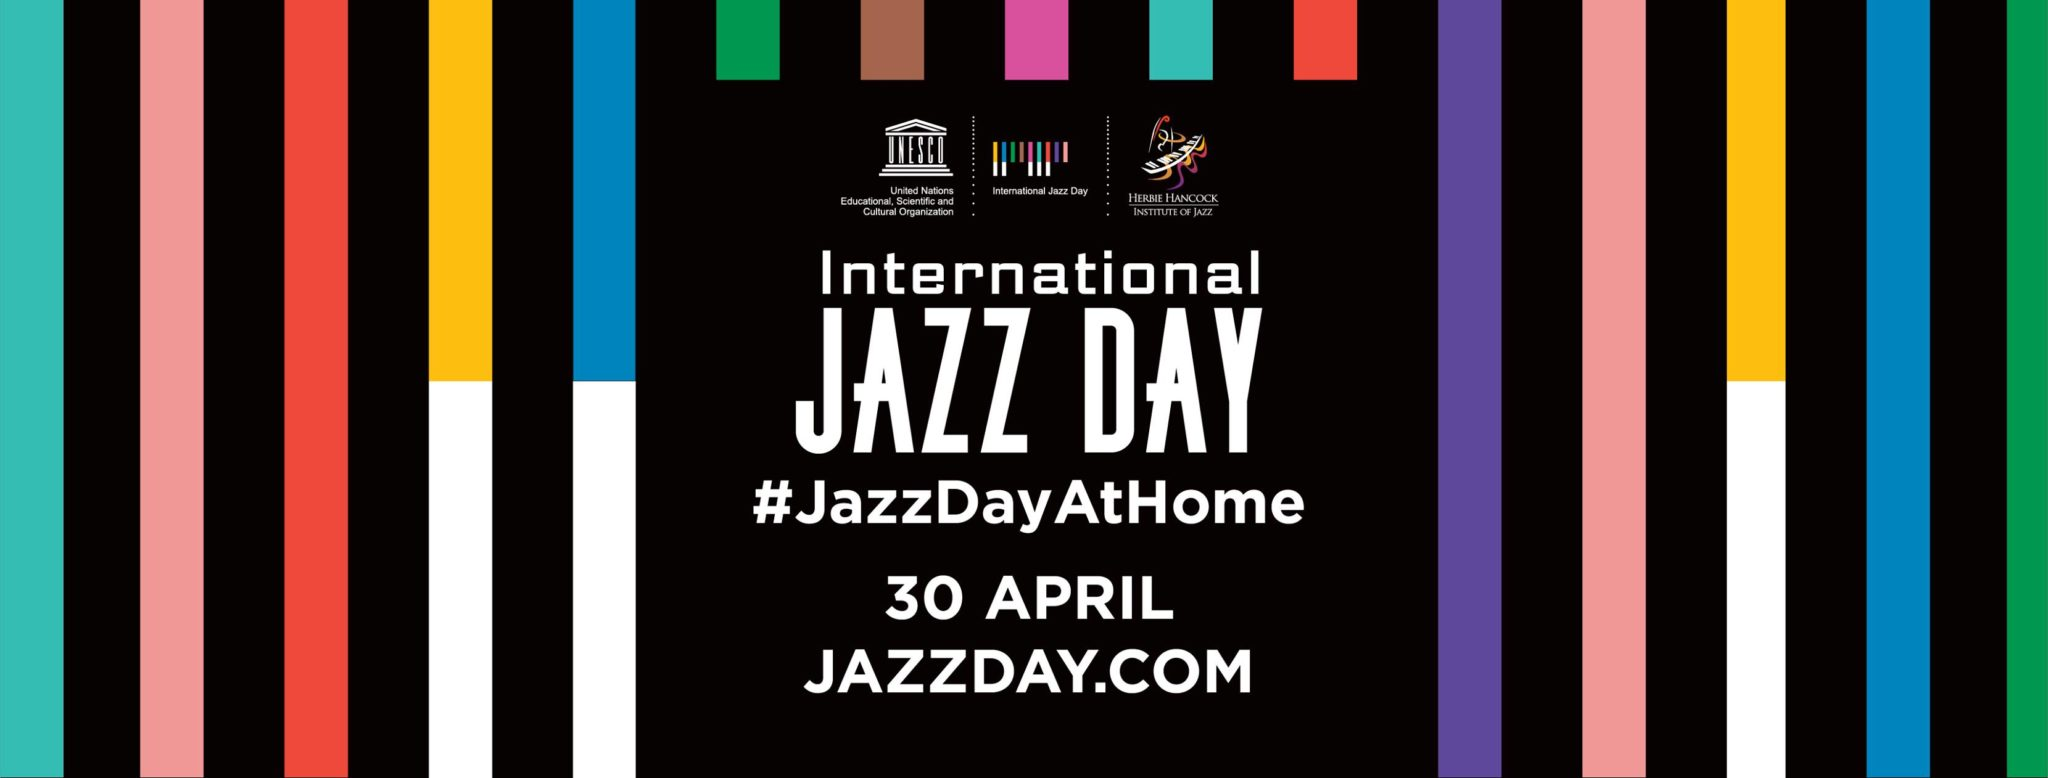 International-jazz-day-1-2048x778